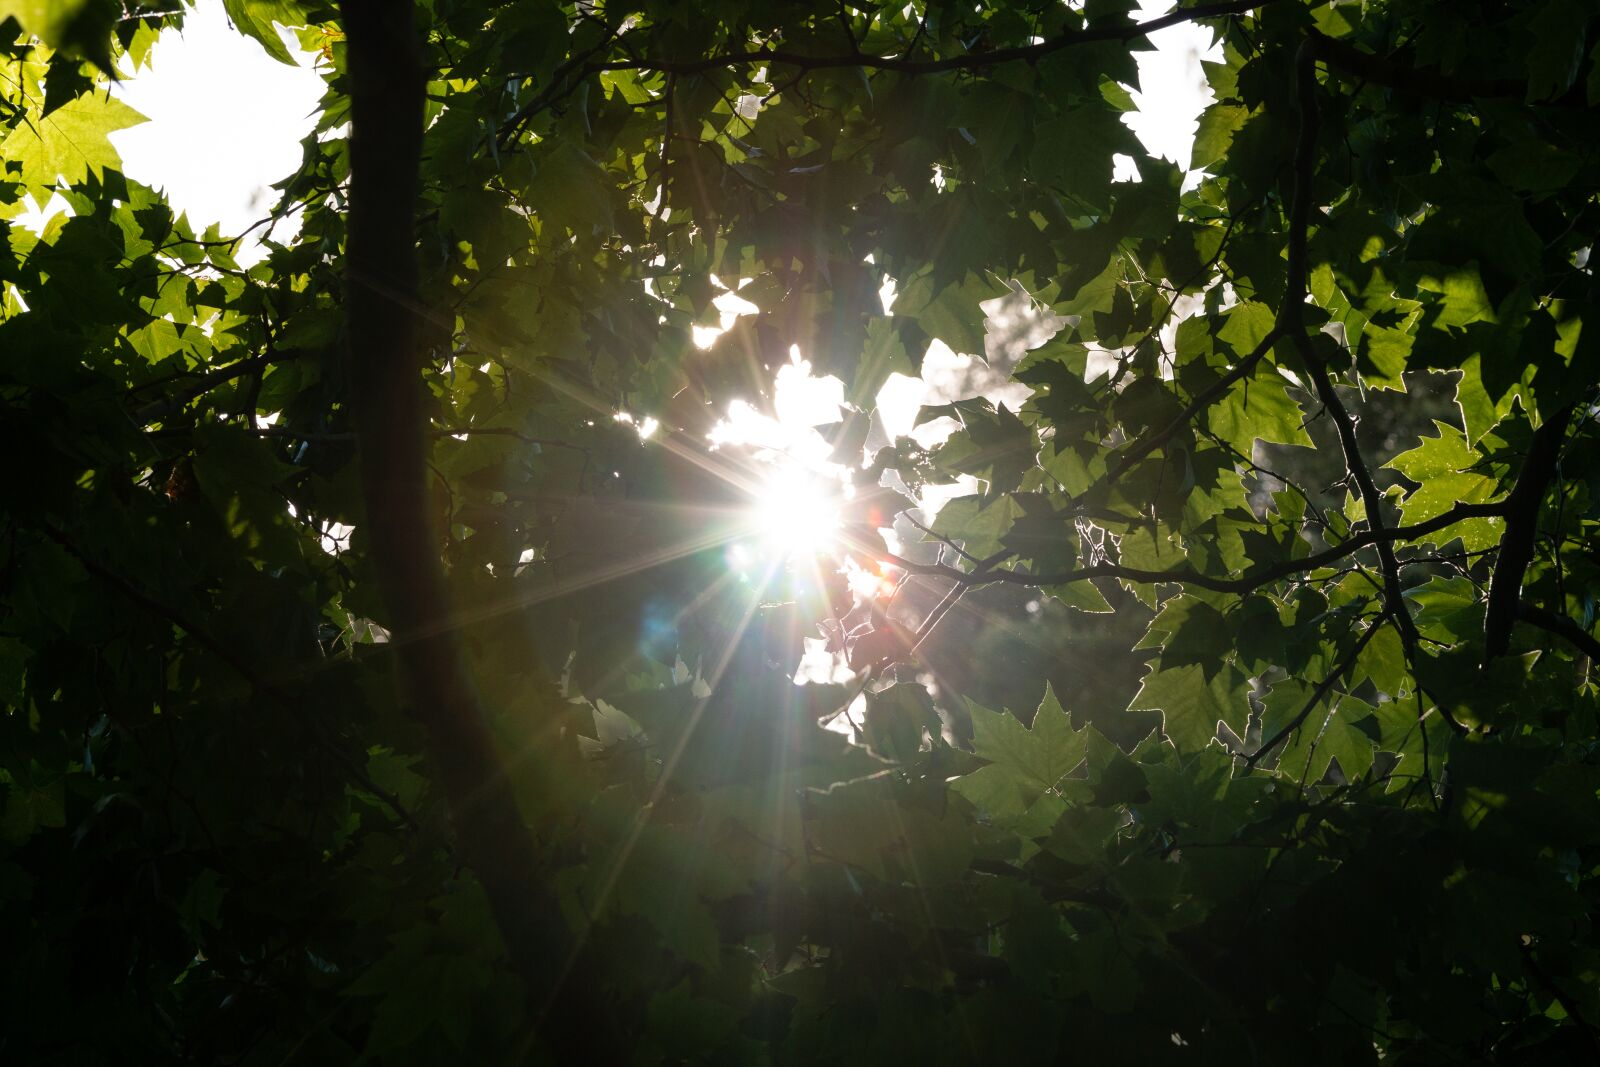 """Canon EOS 70D sample photo. """"Sun, tree leaves, nature"""" photography"""